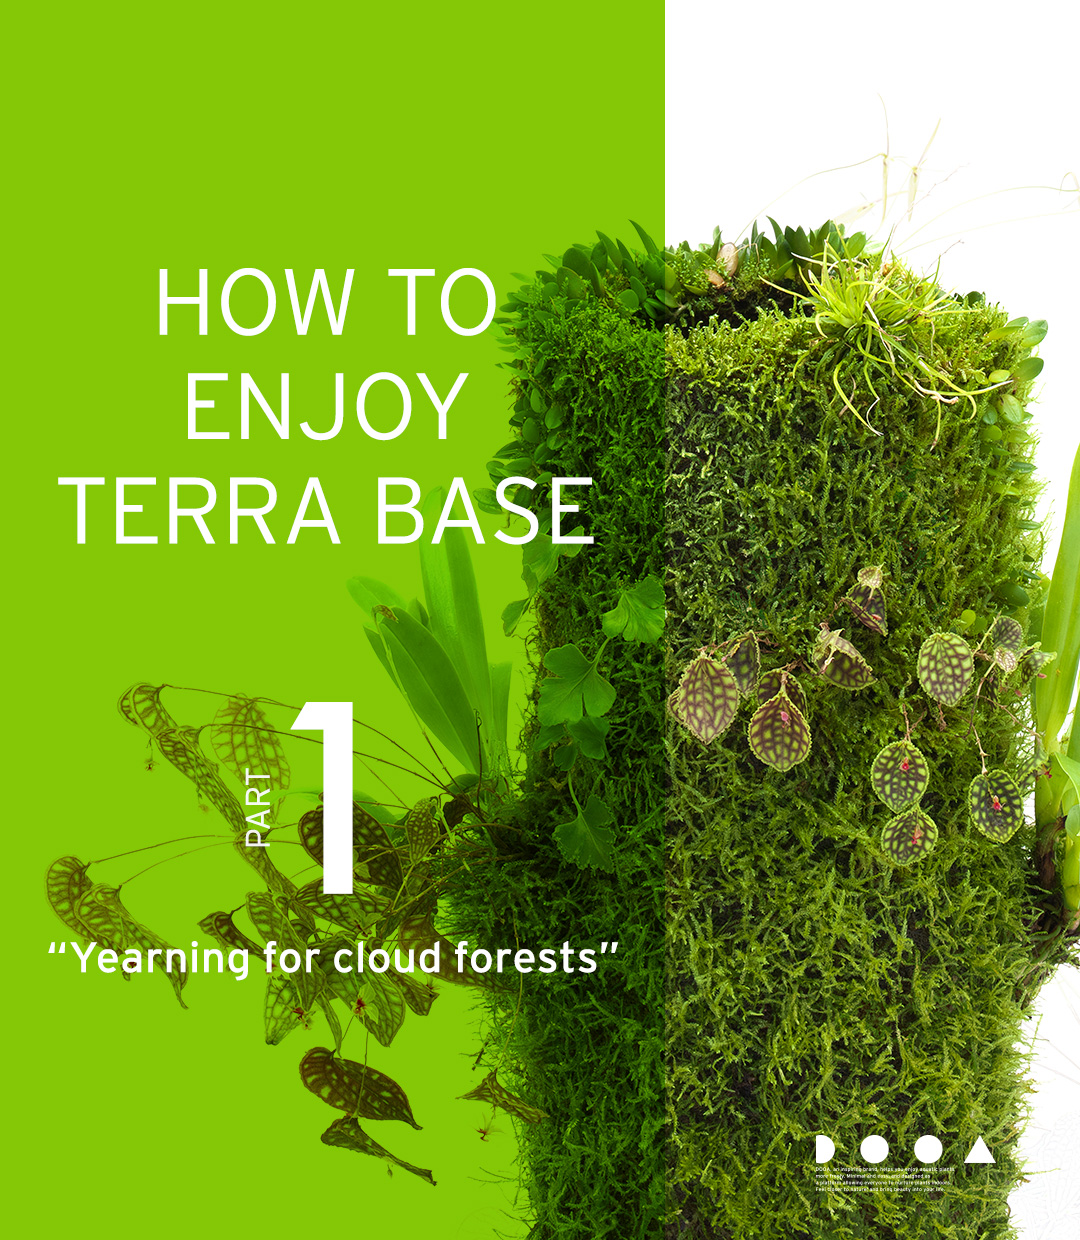 HOW TO ENJOY TERRA BASE  'Yearning for cloud forests'